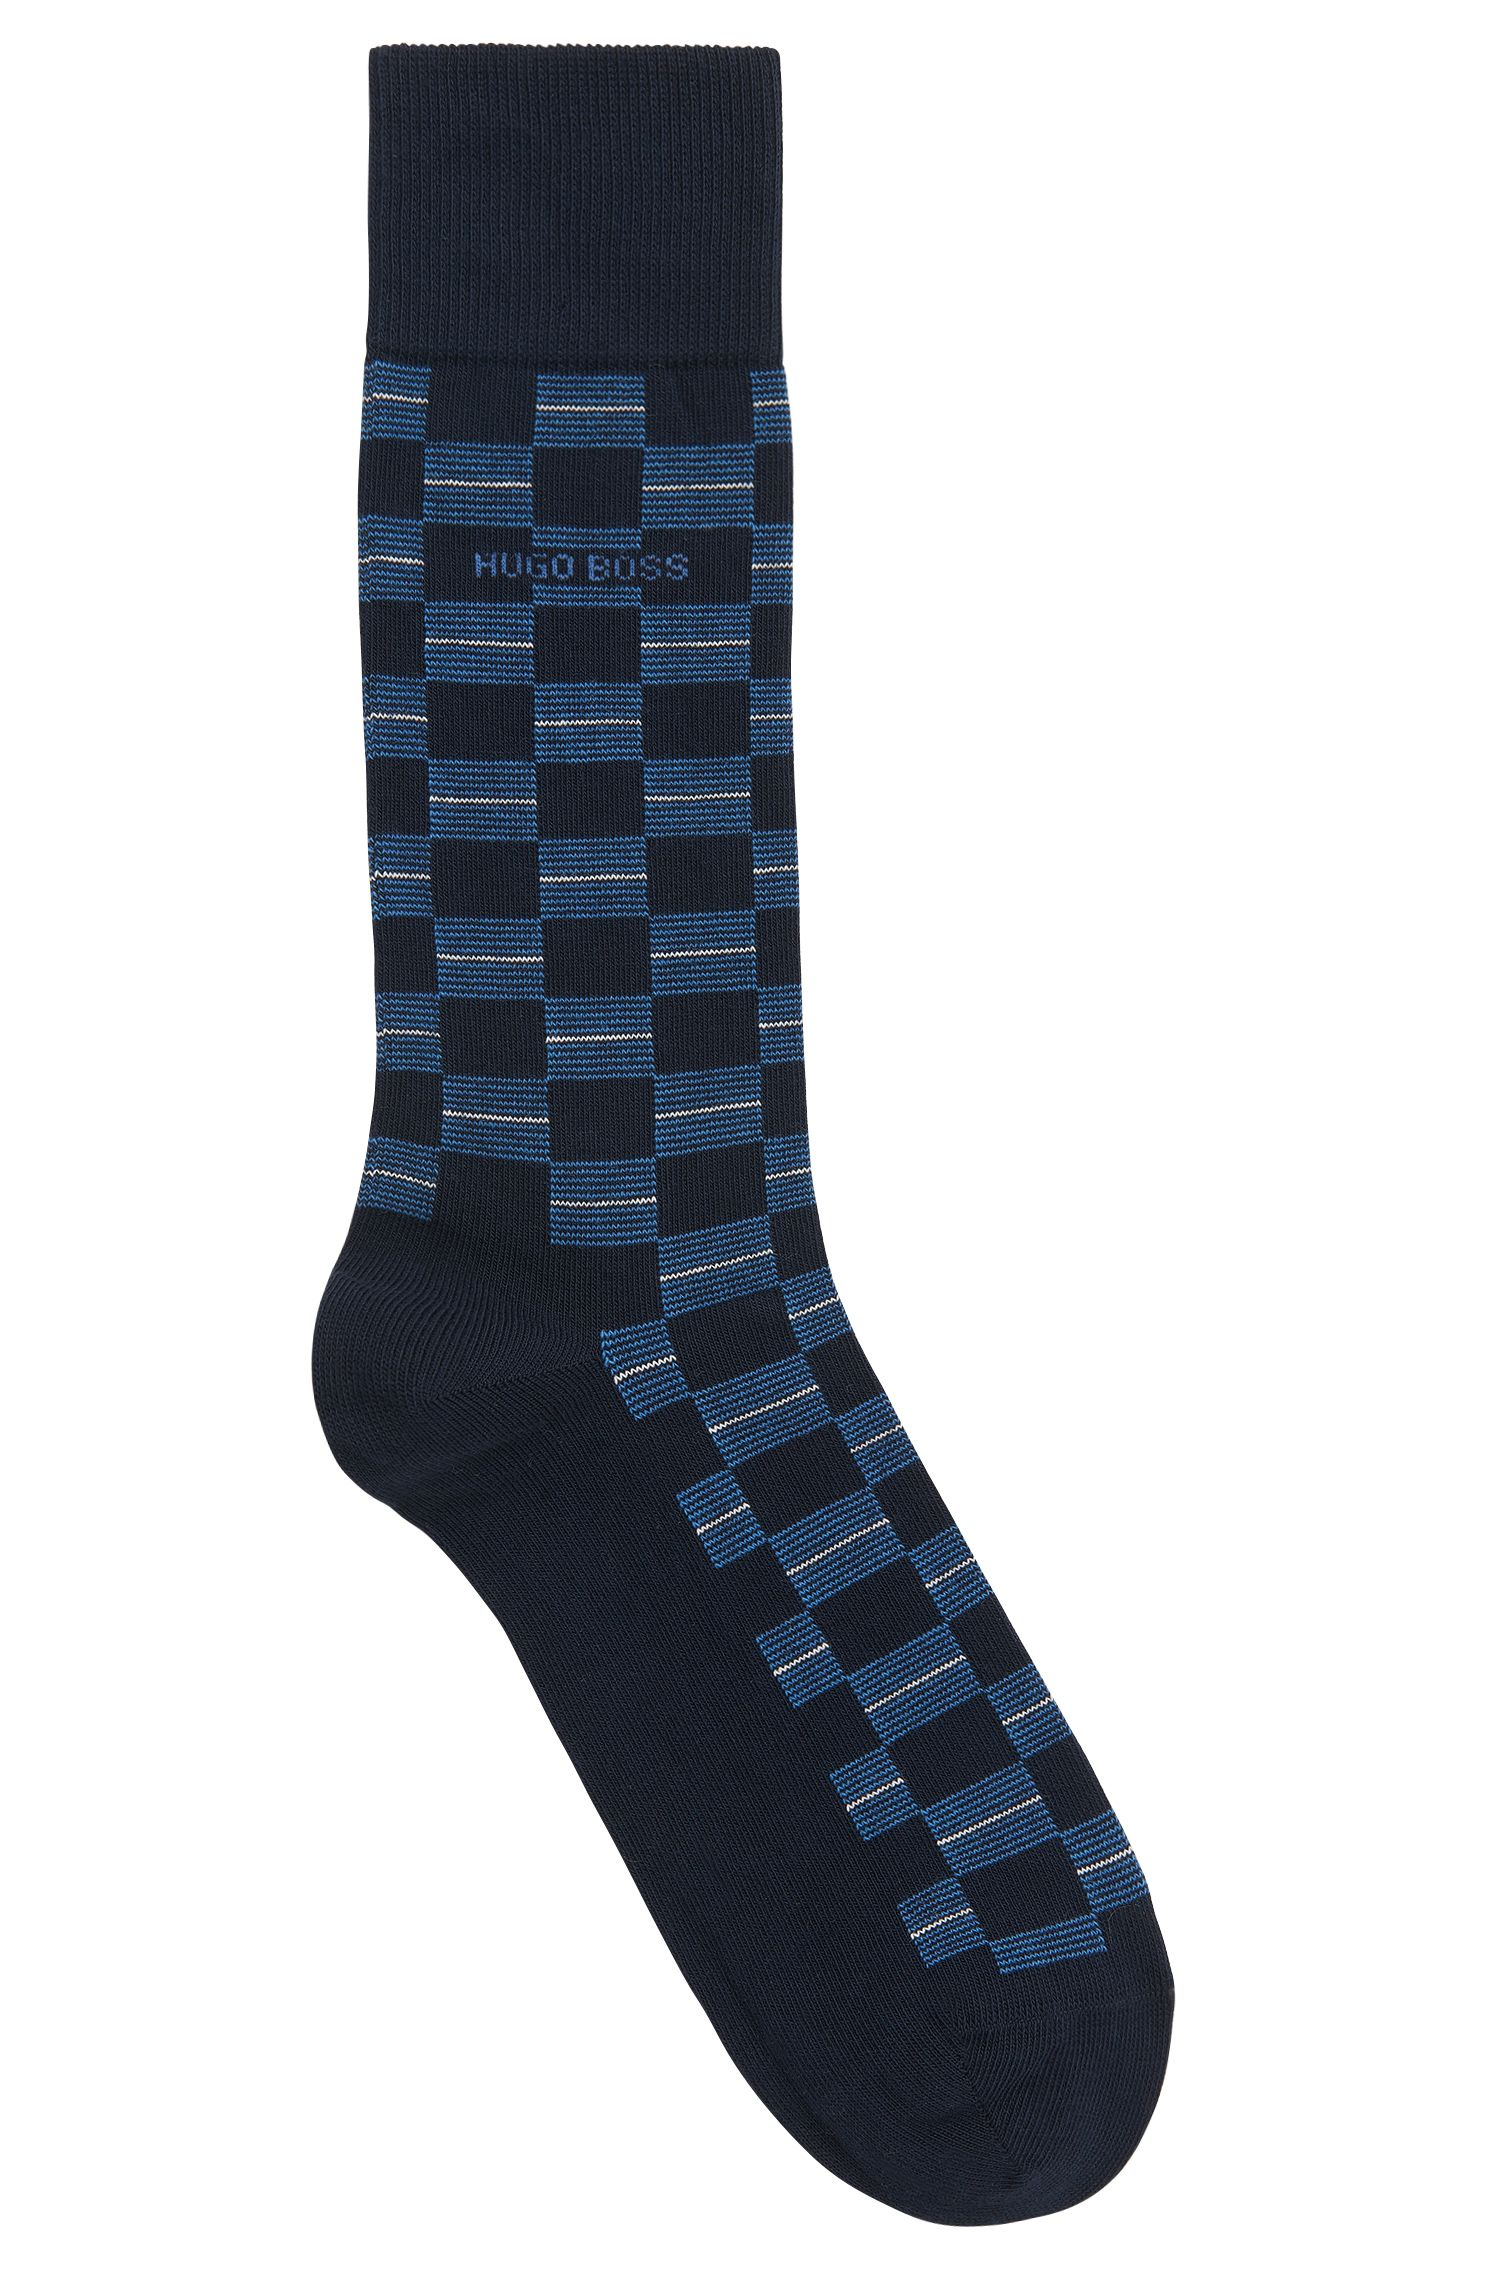 Checked Stretch Cotton Blend Socks | RS Check US CC